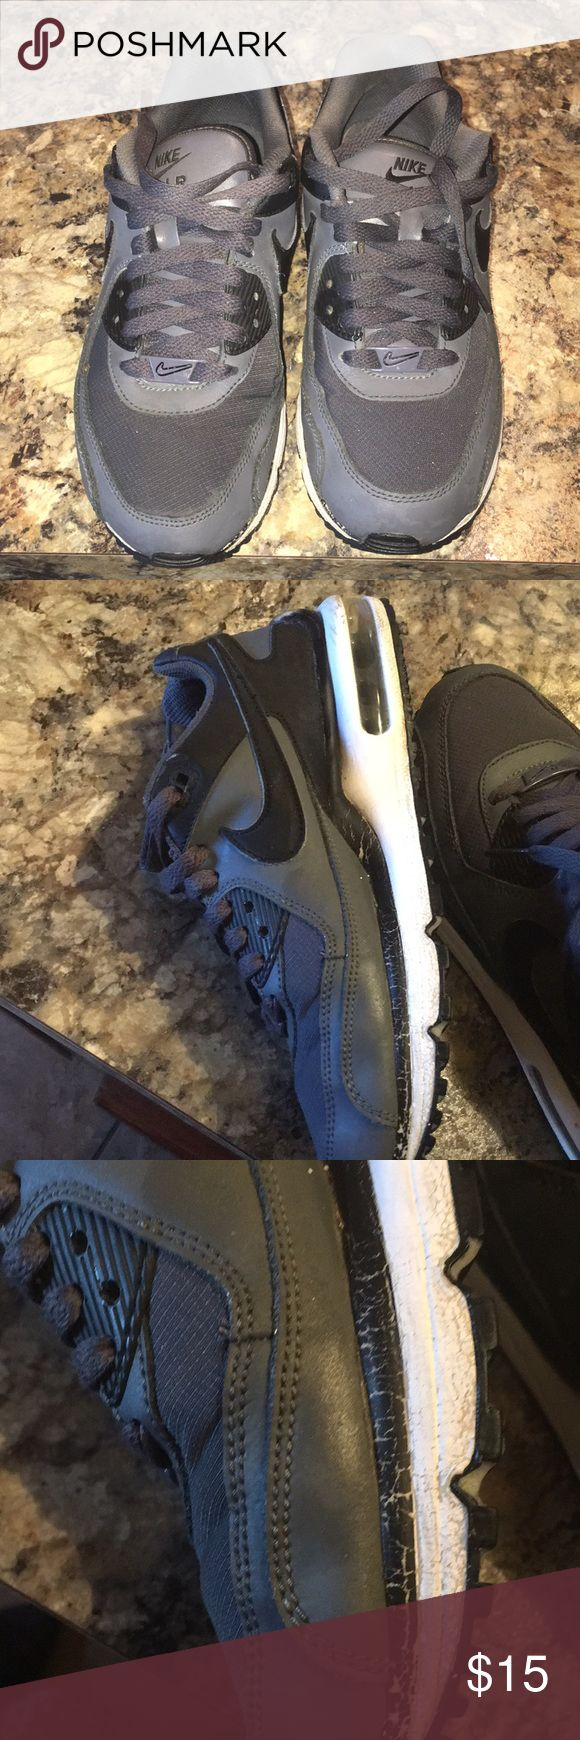 Girls air max shoes Shoes size 5. Color gray and black... has signs of wear paint has faded on the side bottom of shoes which is pictured. Shoes still has some wear Nike Shoes Sneakers